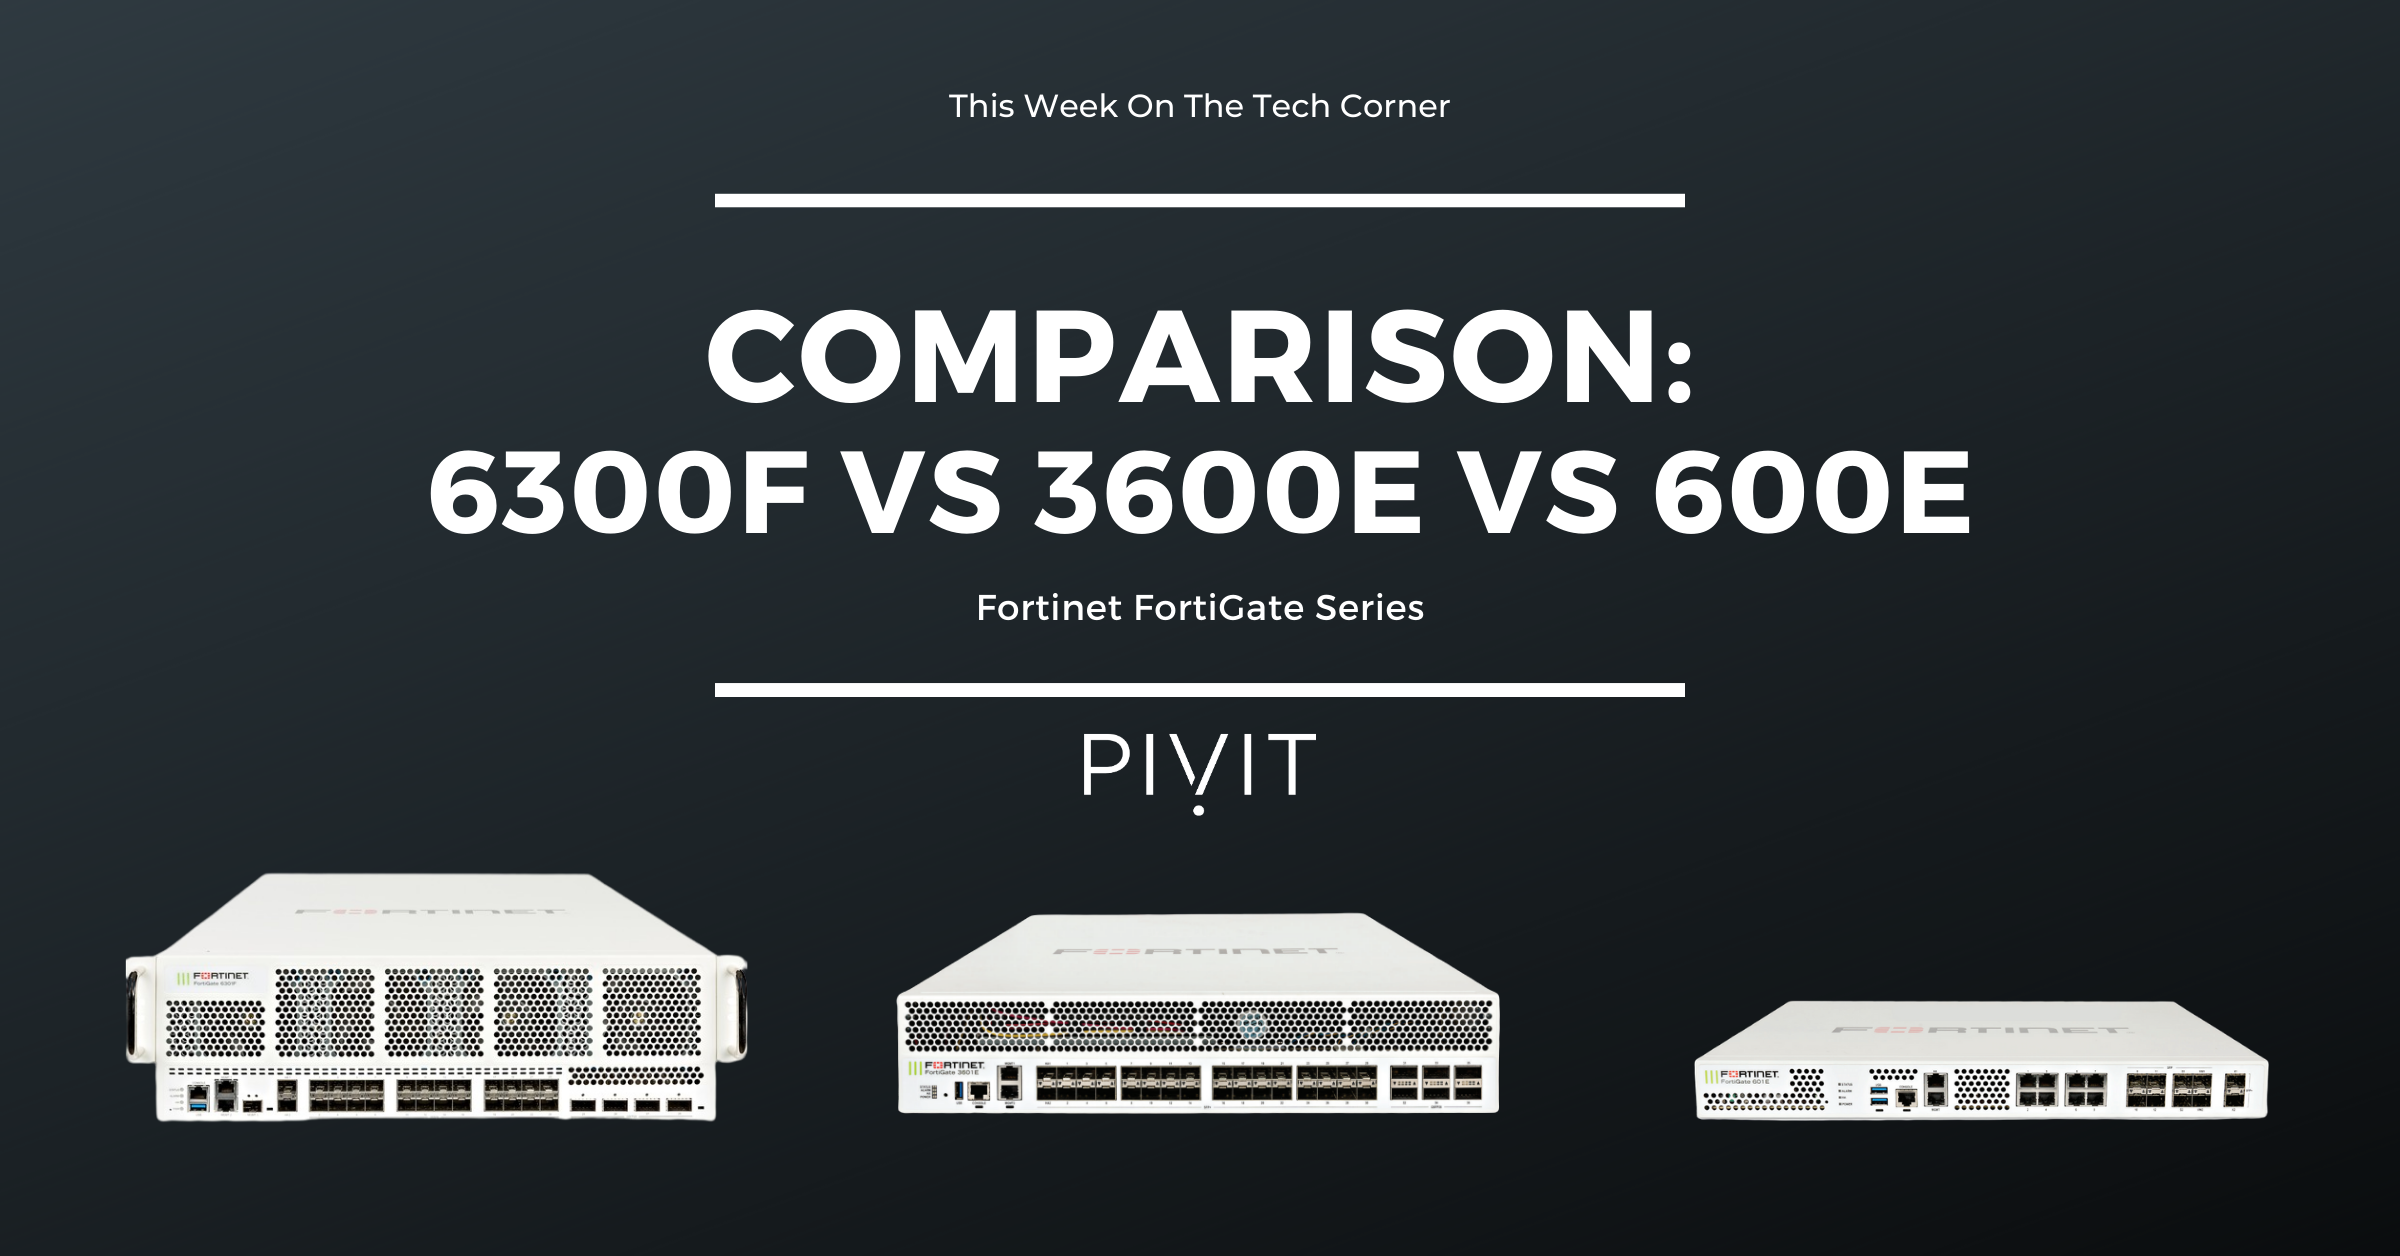 FortiGate Comparison: 6300F vs 3600E vs 600E